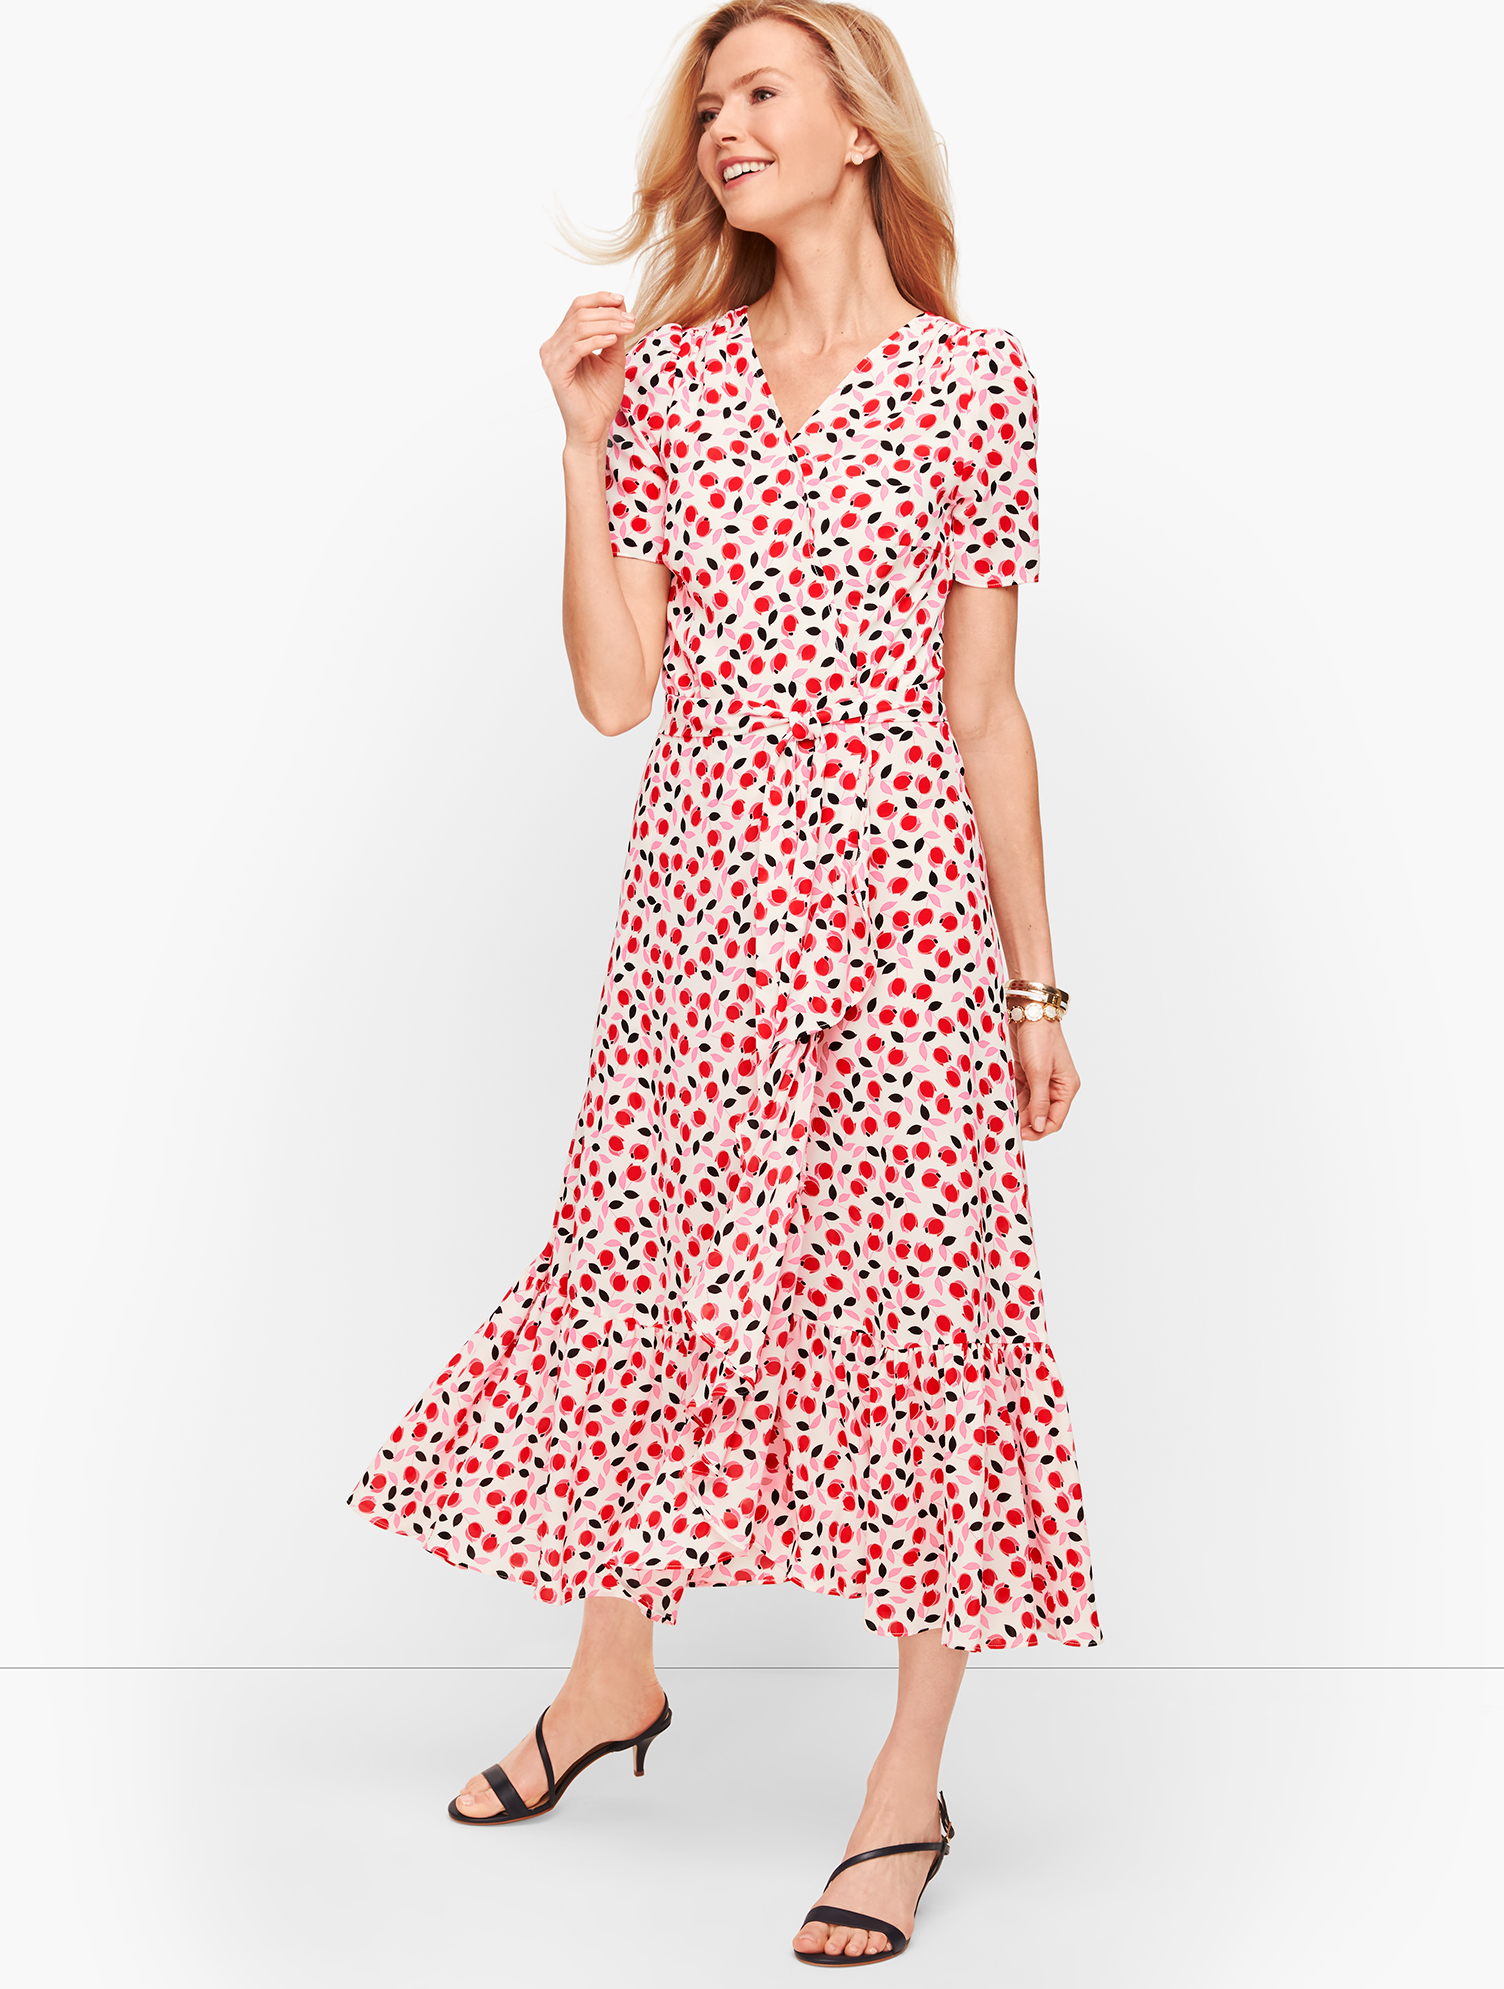 Romantic blooms. Flattering faux wrap dress styling. Cascading flounce. Go with the flow. Features Silhouette: Wrap Neckline: V-Neck Sleeve length: Short Closure: Invisible Back Zip Imported Fit: Misses: 47 inches, Petite: 43 1/2 inches, Plus: 48 inches, Plus Petite: 45 inches Material: 95% Polyester, 5% Spandex Care: Machine Wash; Tumble Dry Low Cascade Wrap Dress - Floral - Ivory - 16 Talbots